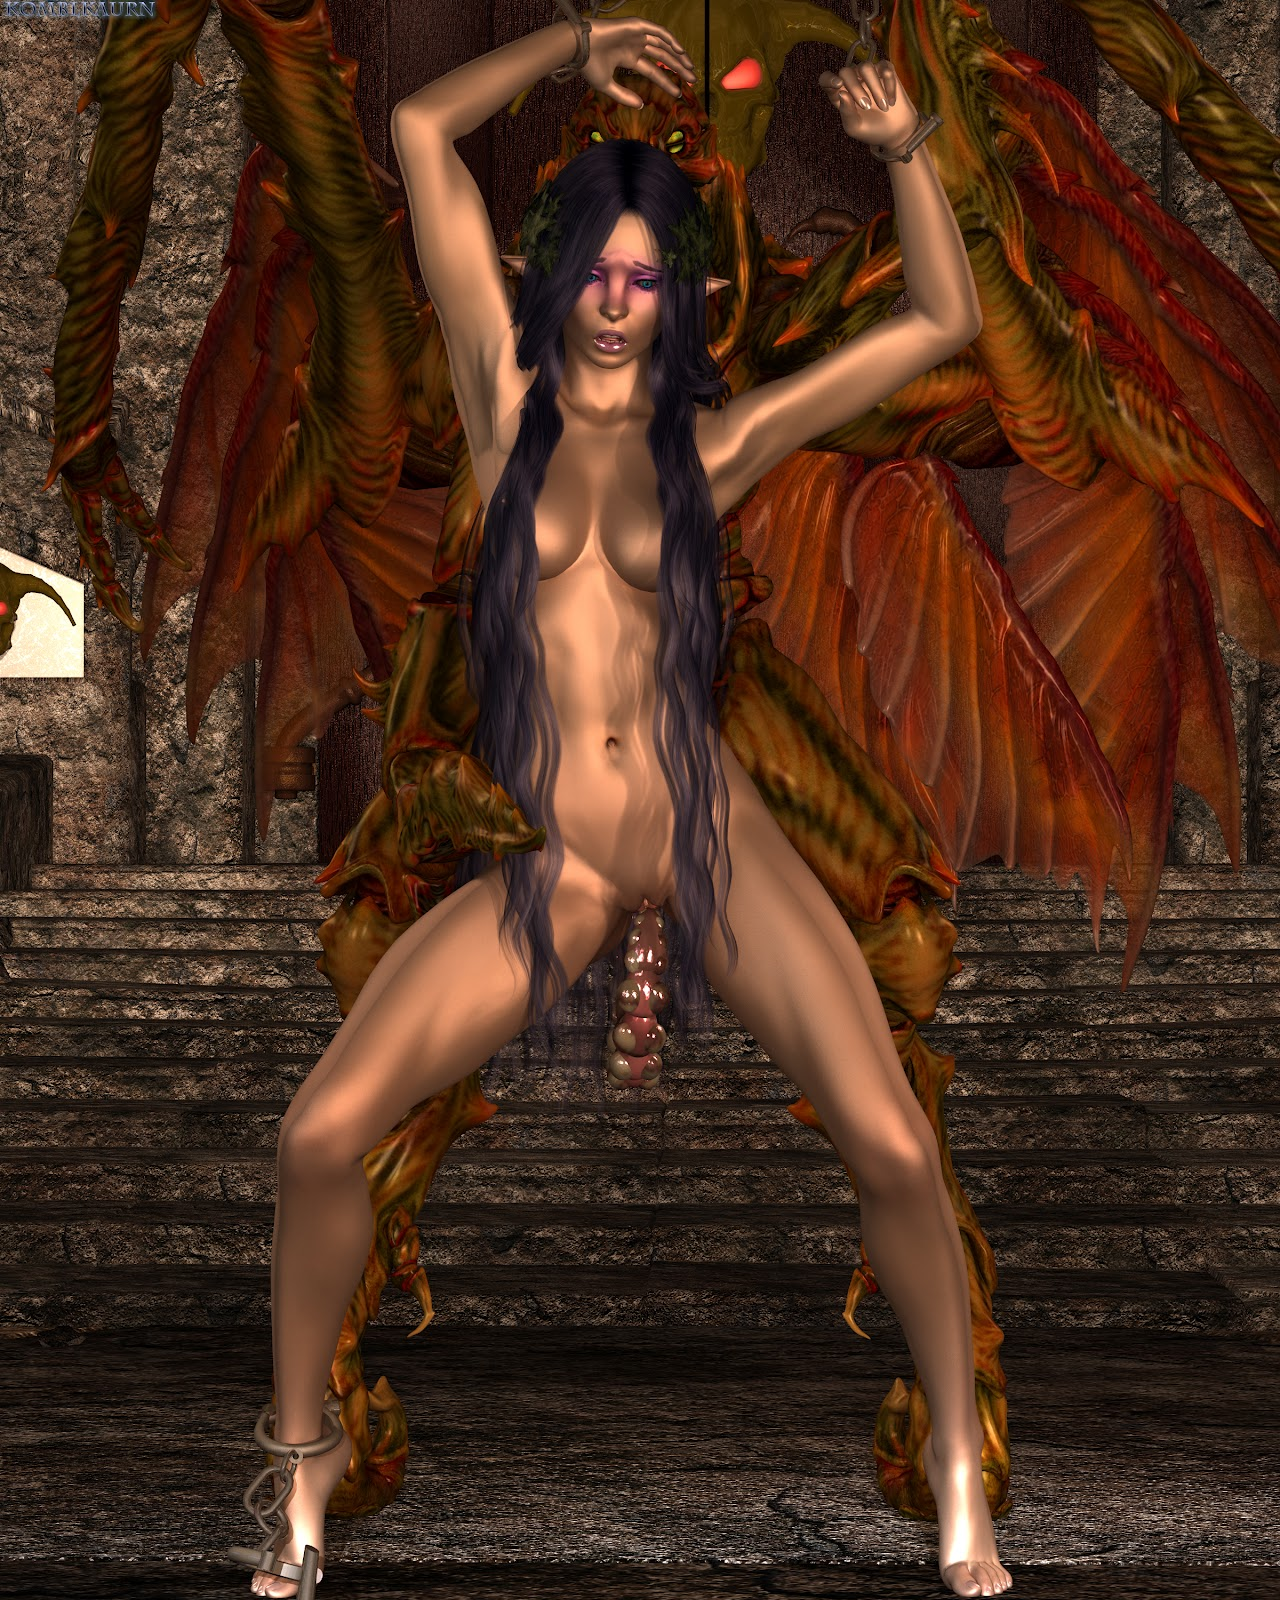 Naked hot girl demon hentia picture